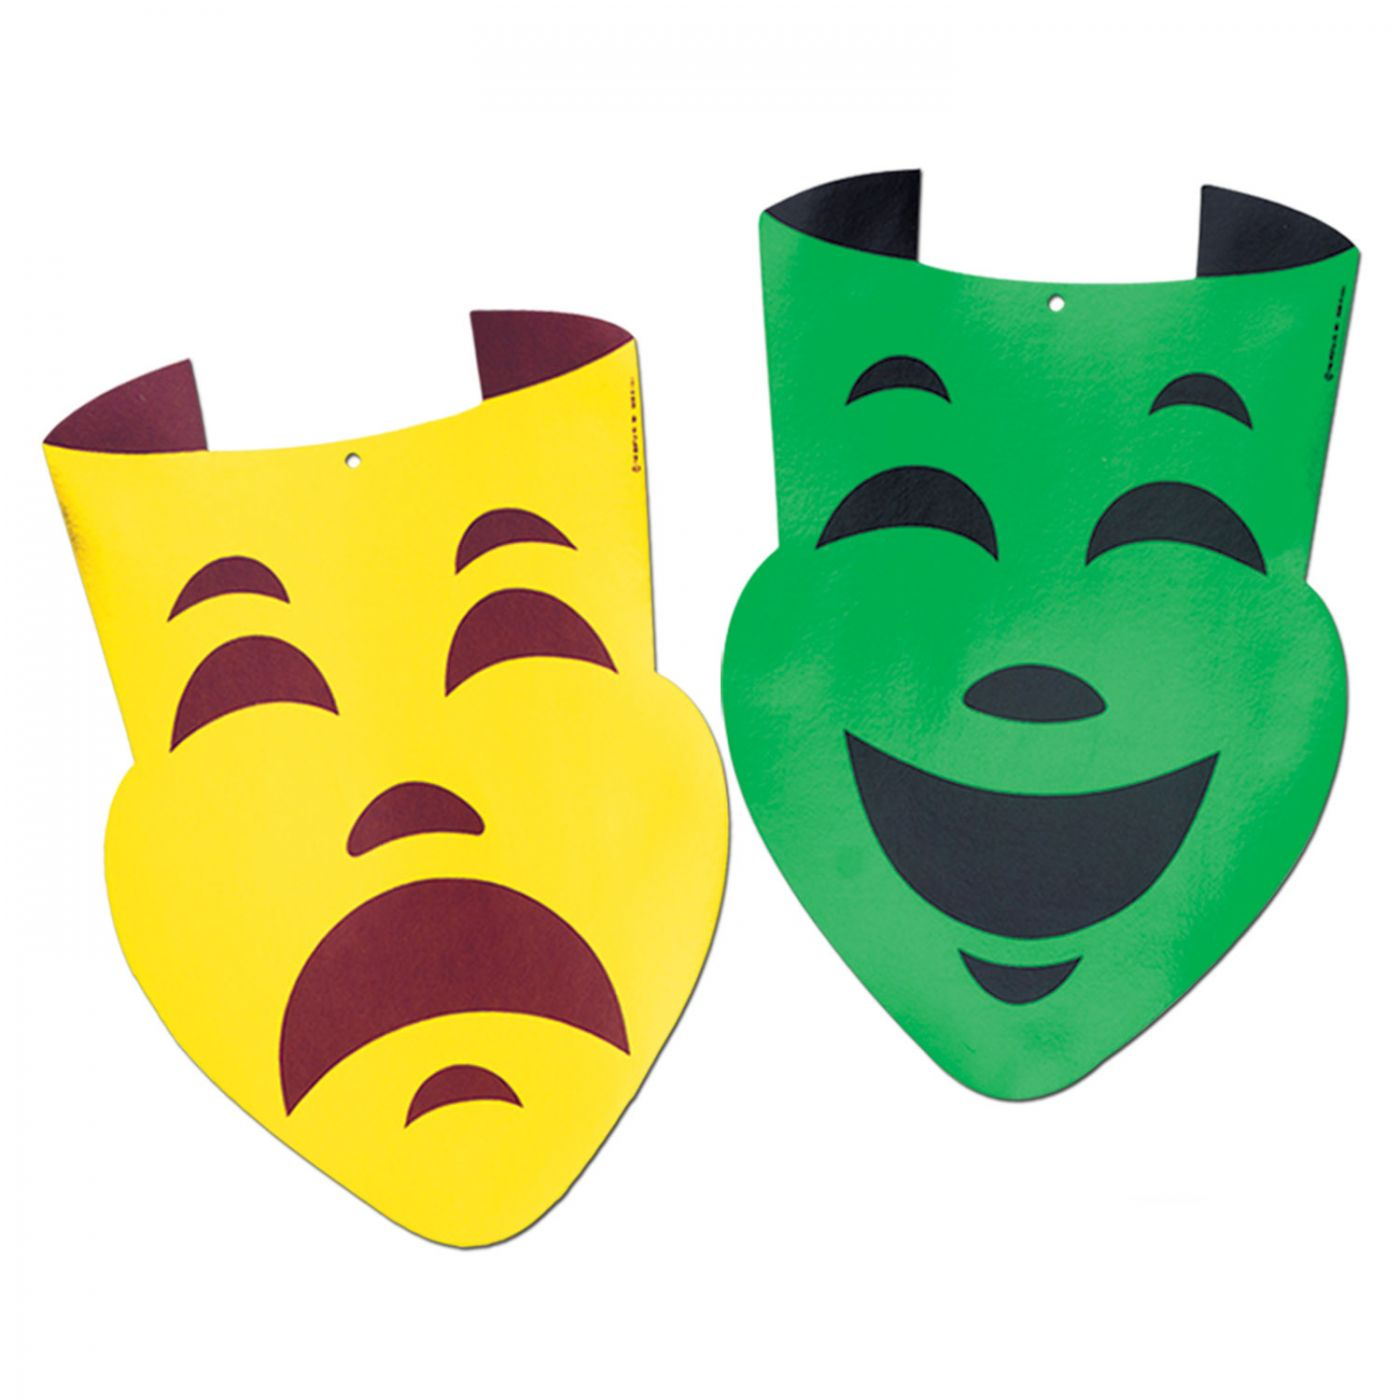 Foil Comedy & Tragedy Face Cutouts (24) image